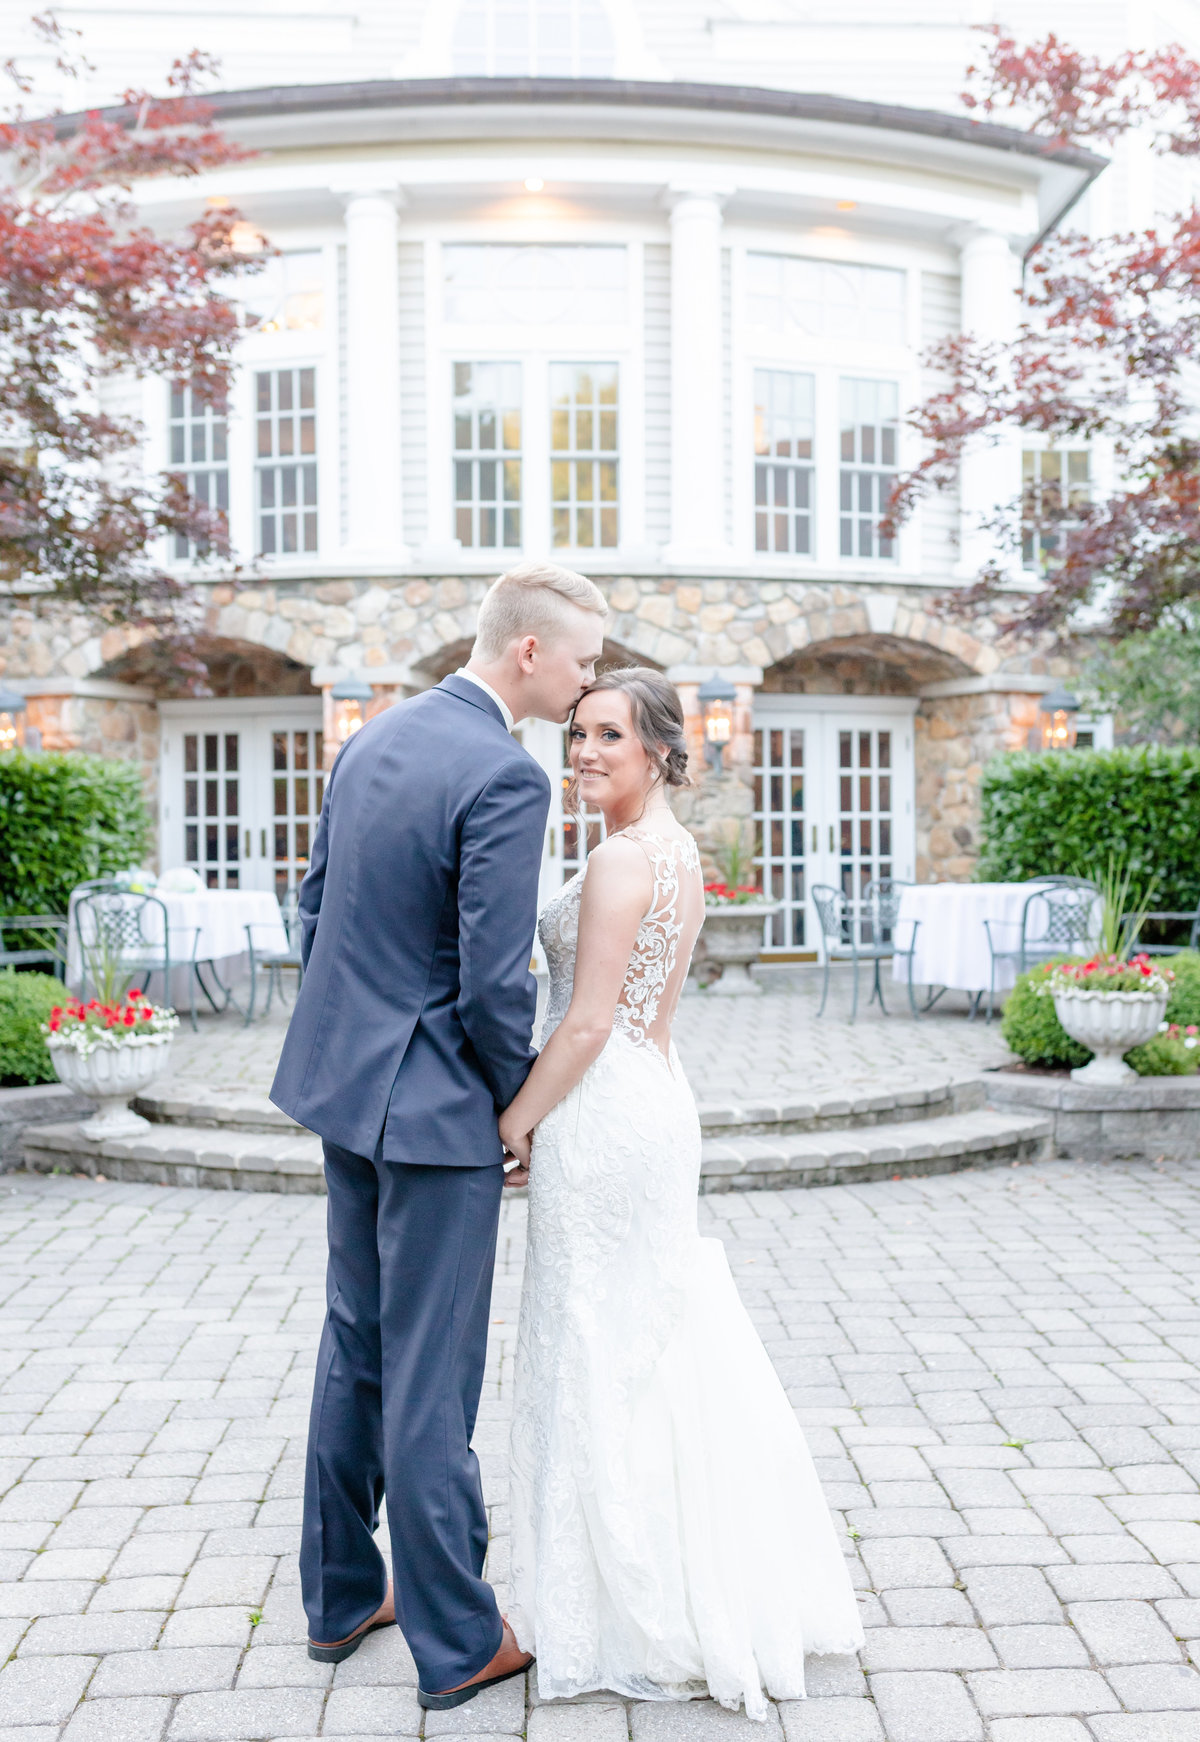 Olde Mille Inn wedding with bride and groom portrait idea